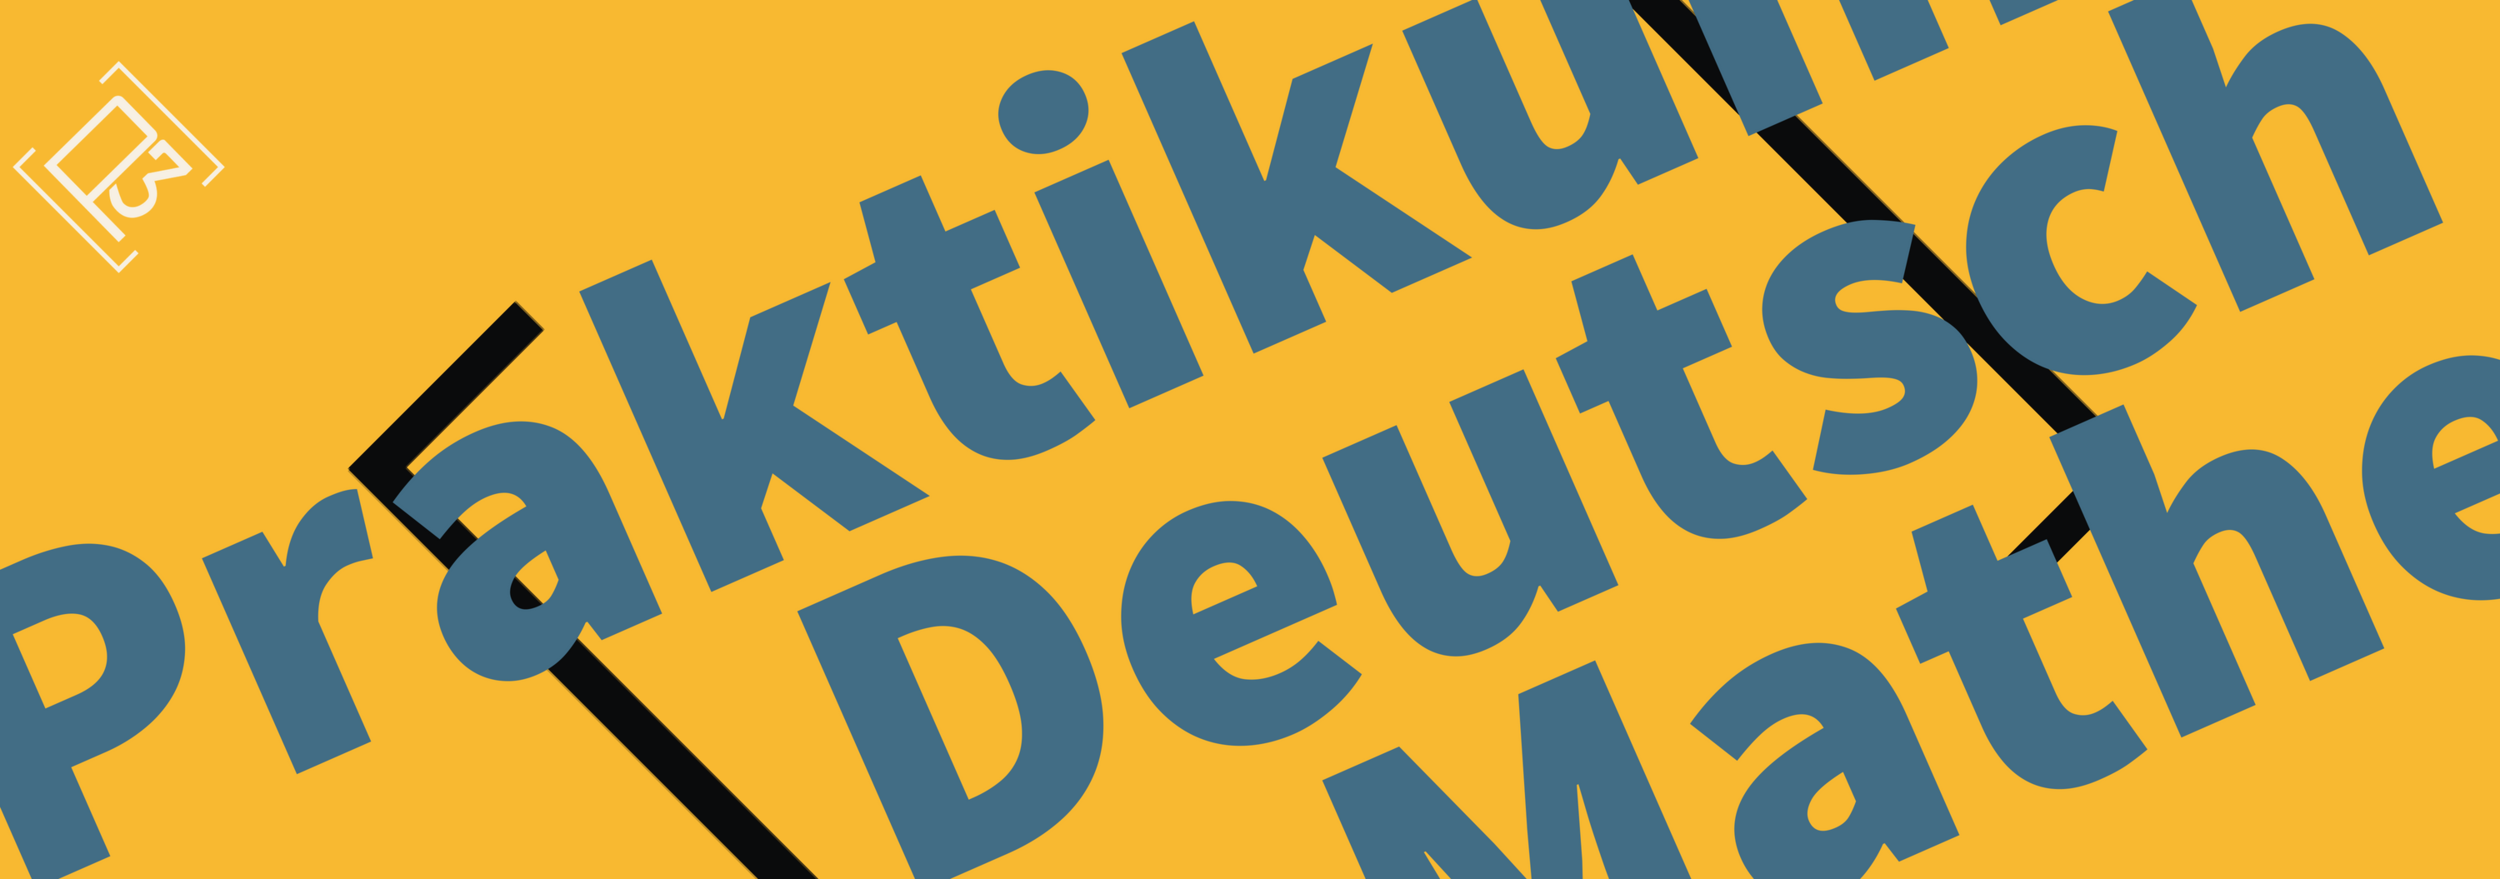 Praktikum Deutsch Mathe.png